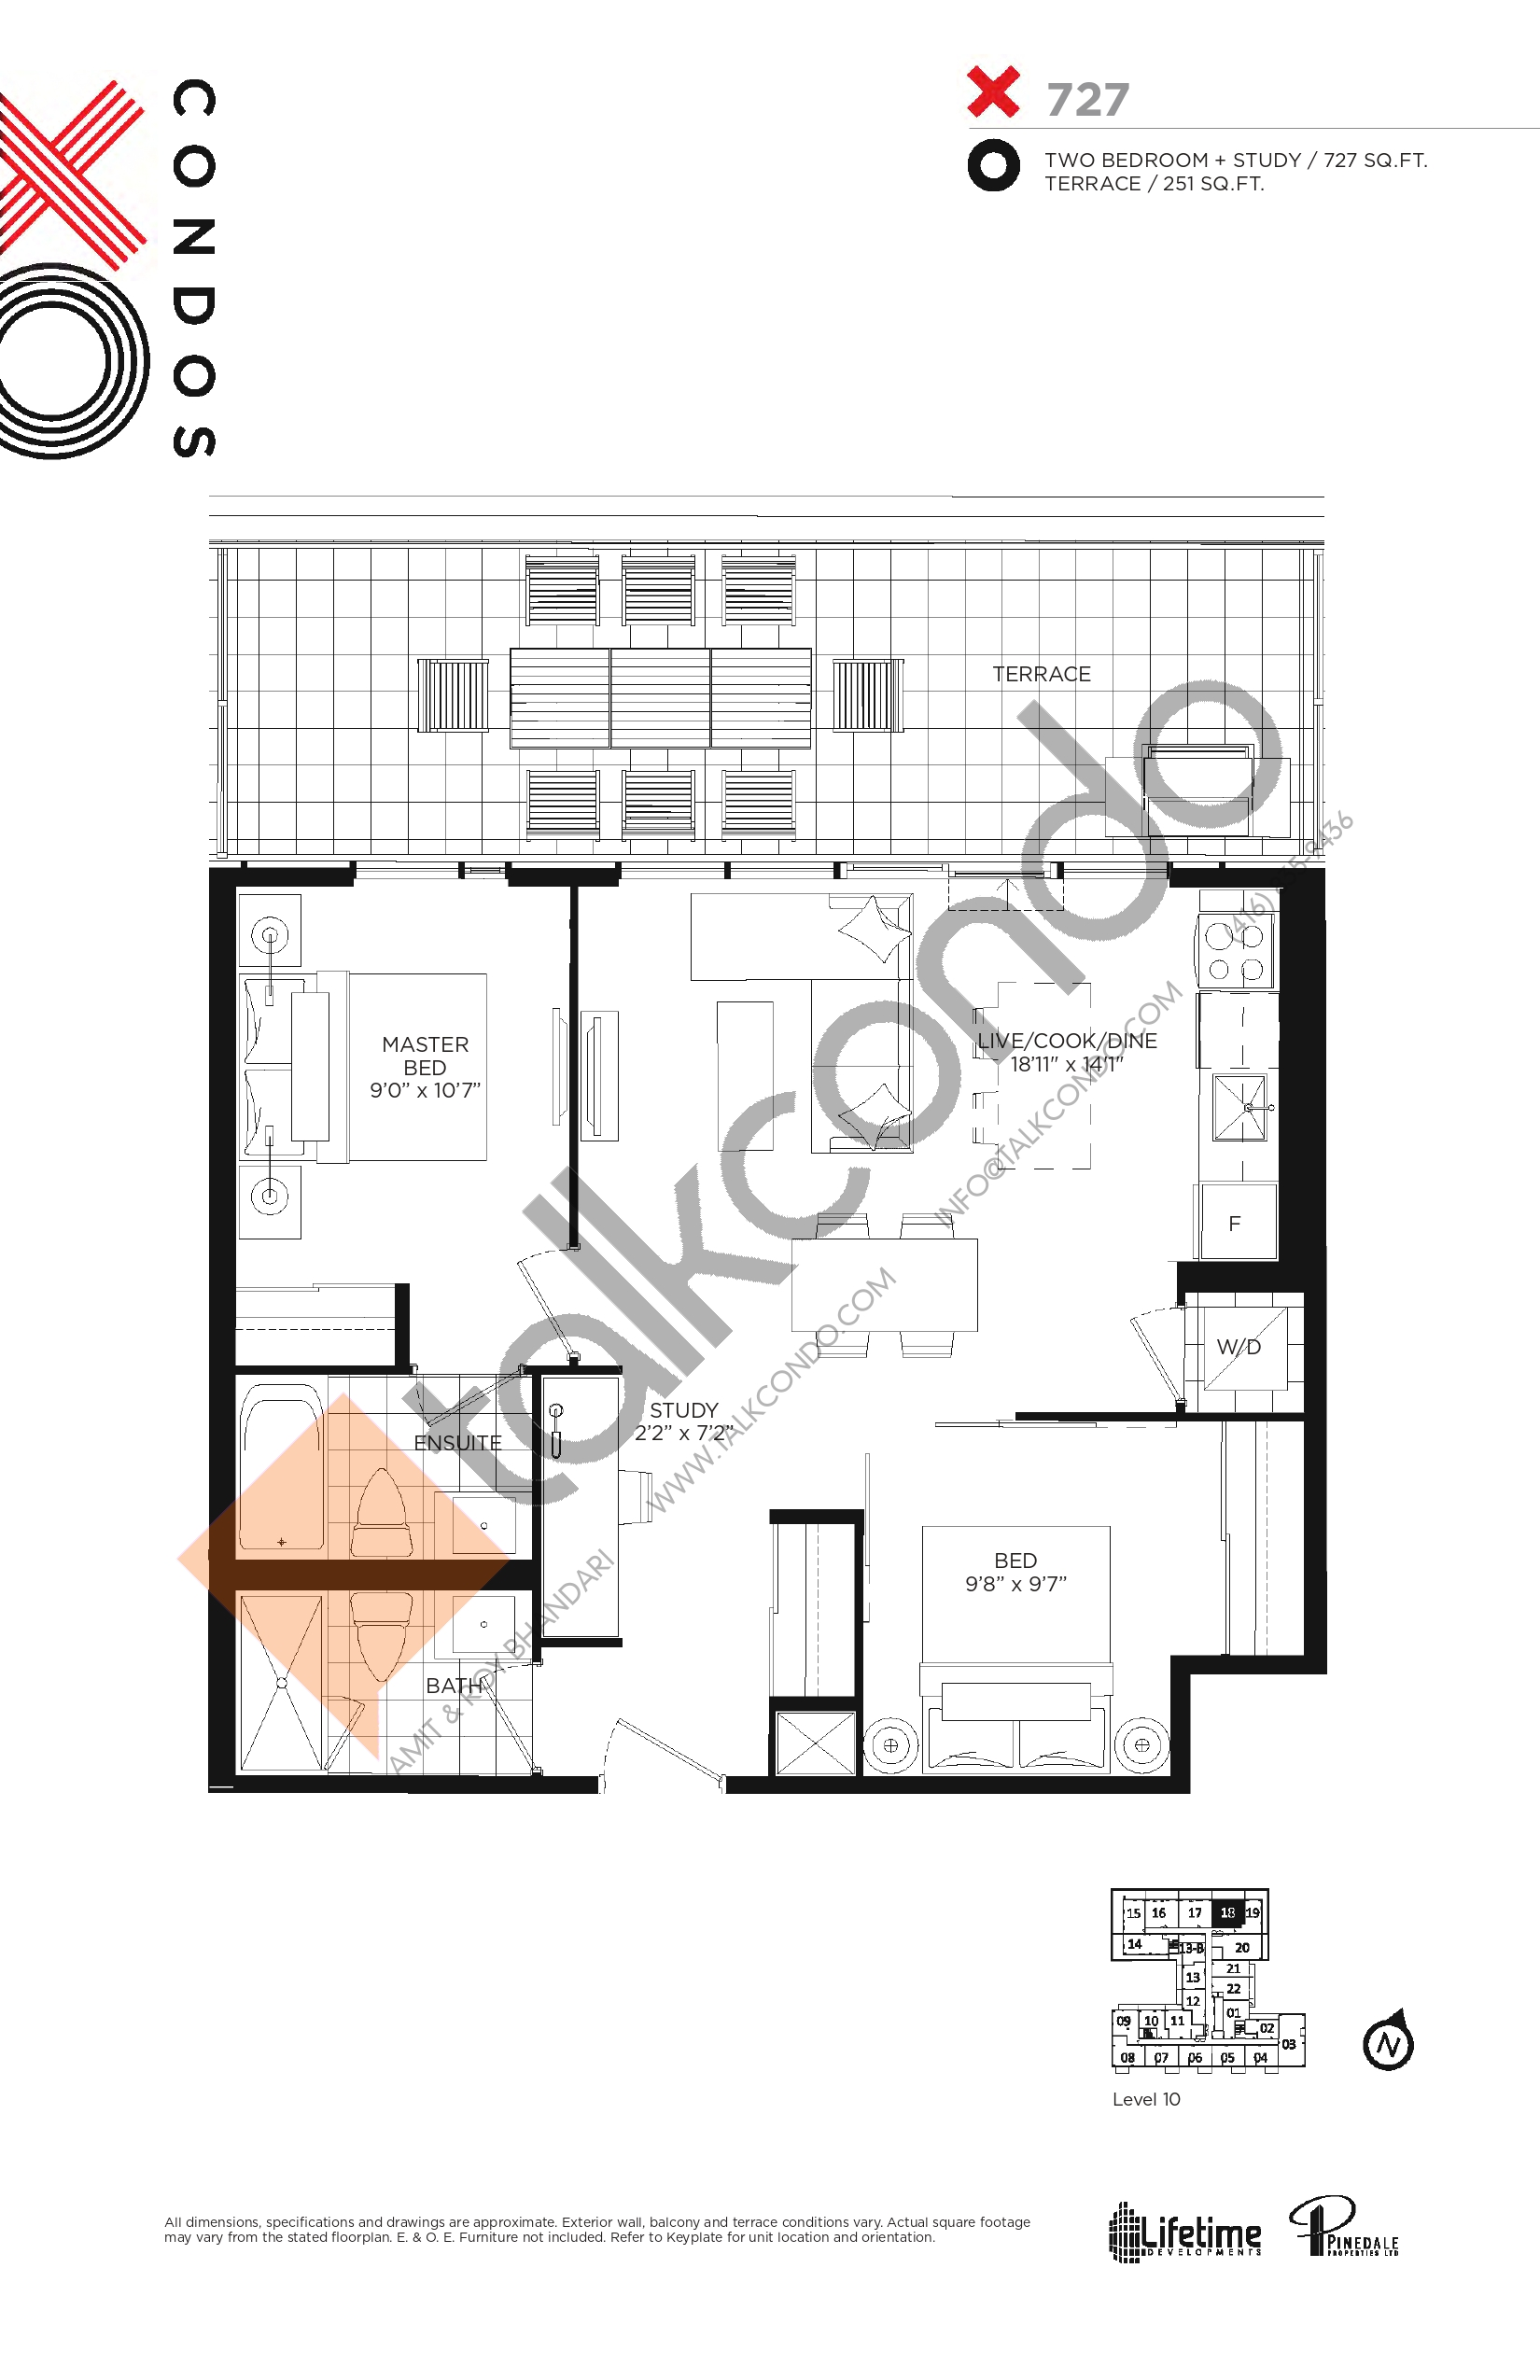 X727 Floor Plan at XO Condos - 727 sq.ft